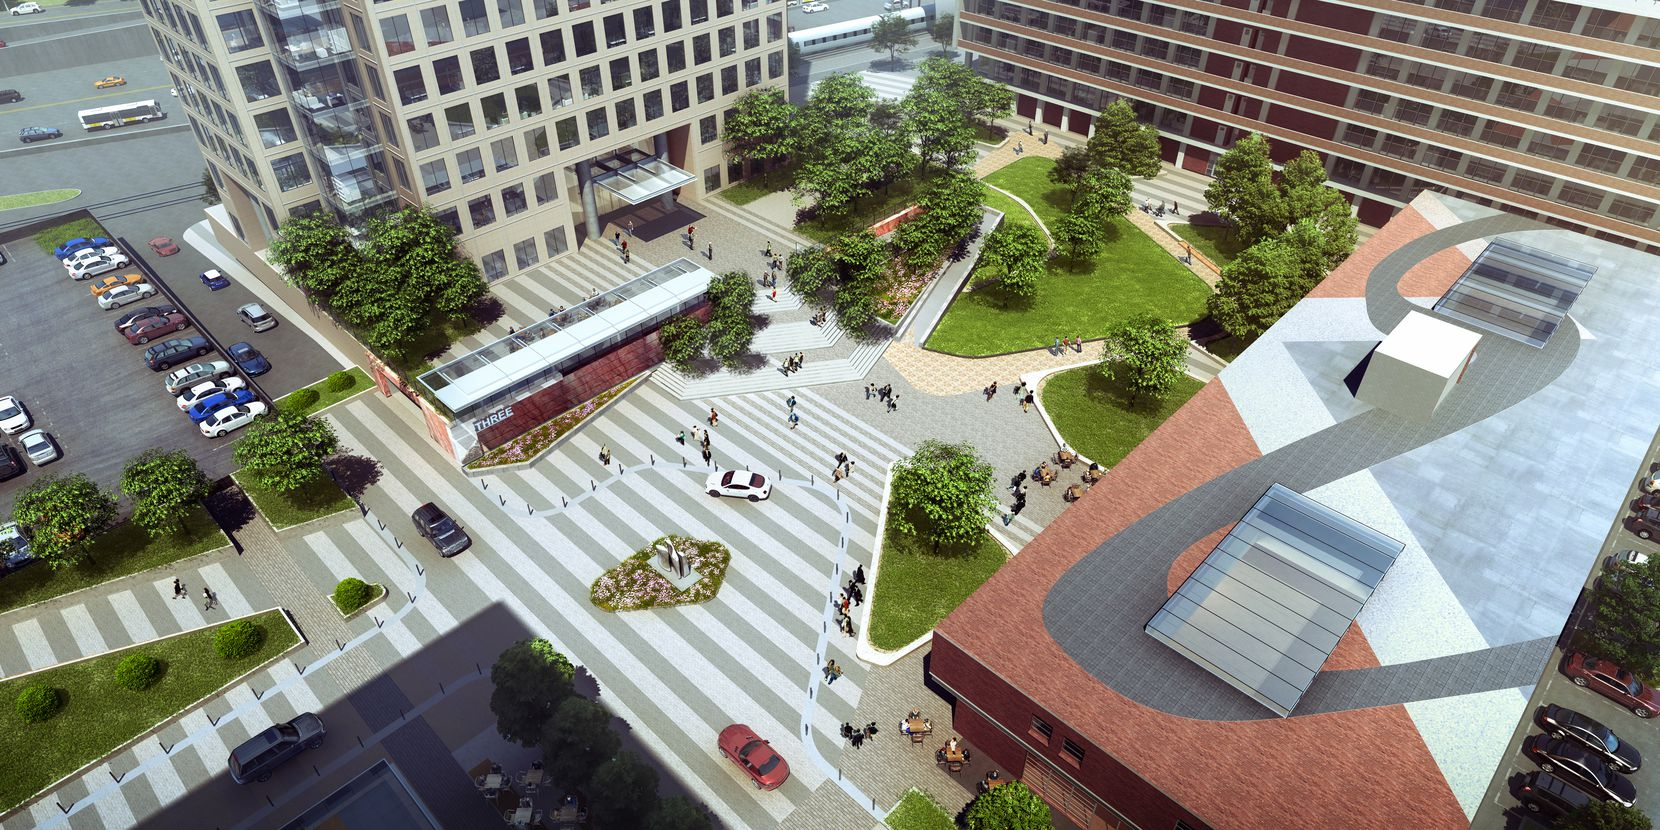 Energy Square and the Meadows Building will share a 1-acre park and central plaza.